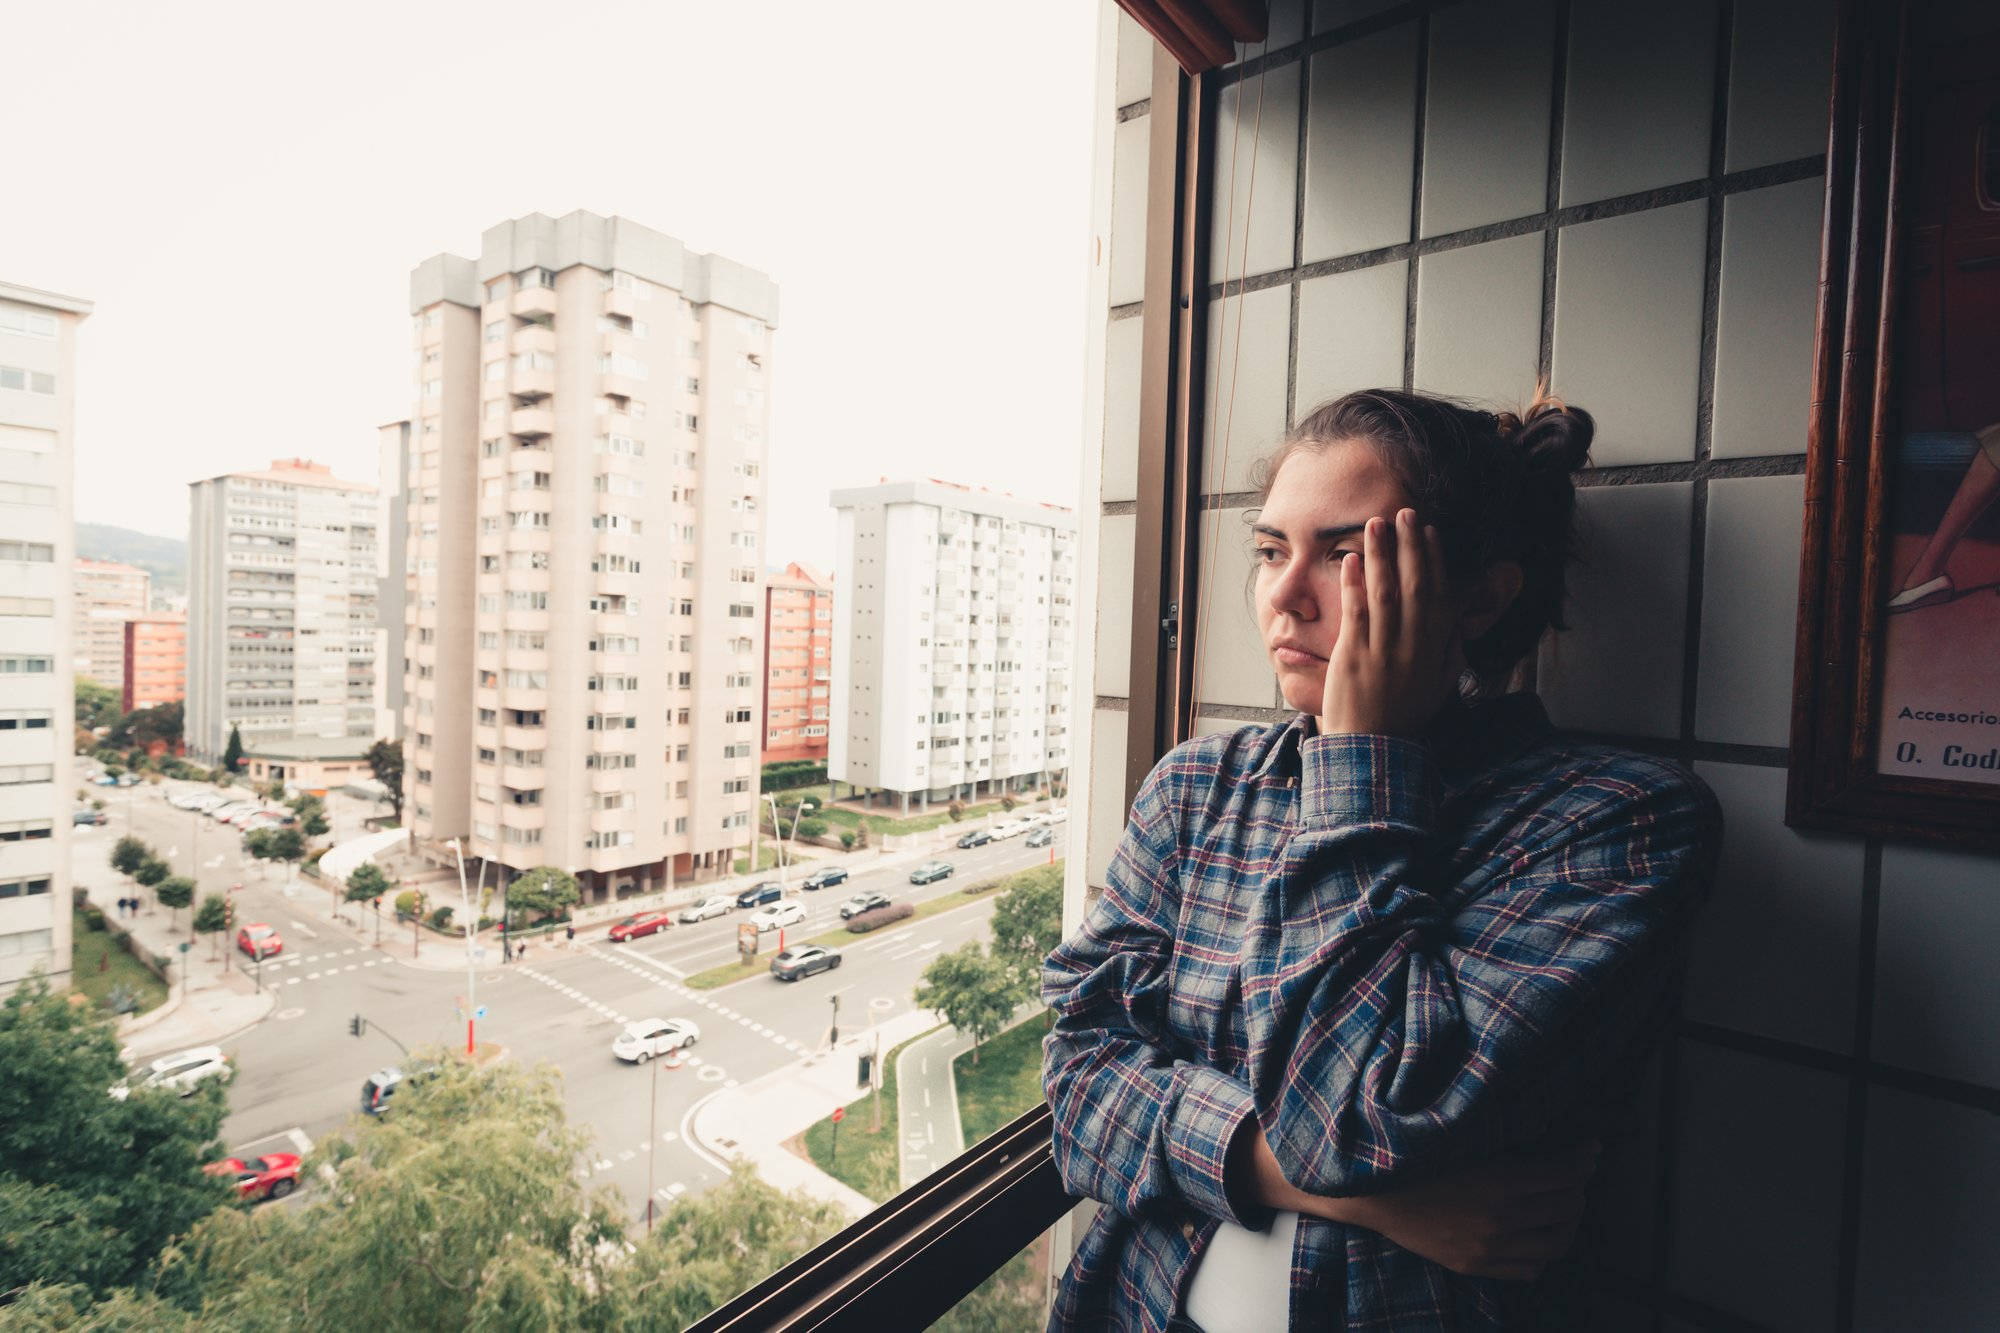 person standing by a window with their hand to their head 站在窗前用手抵着头的人